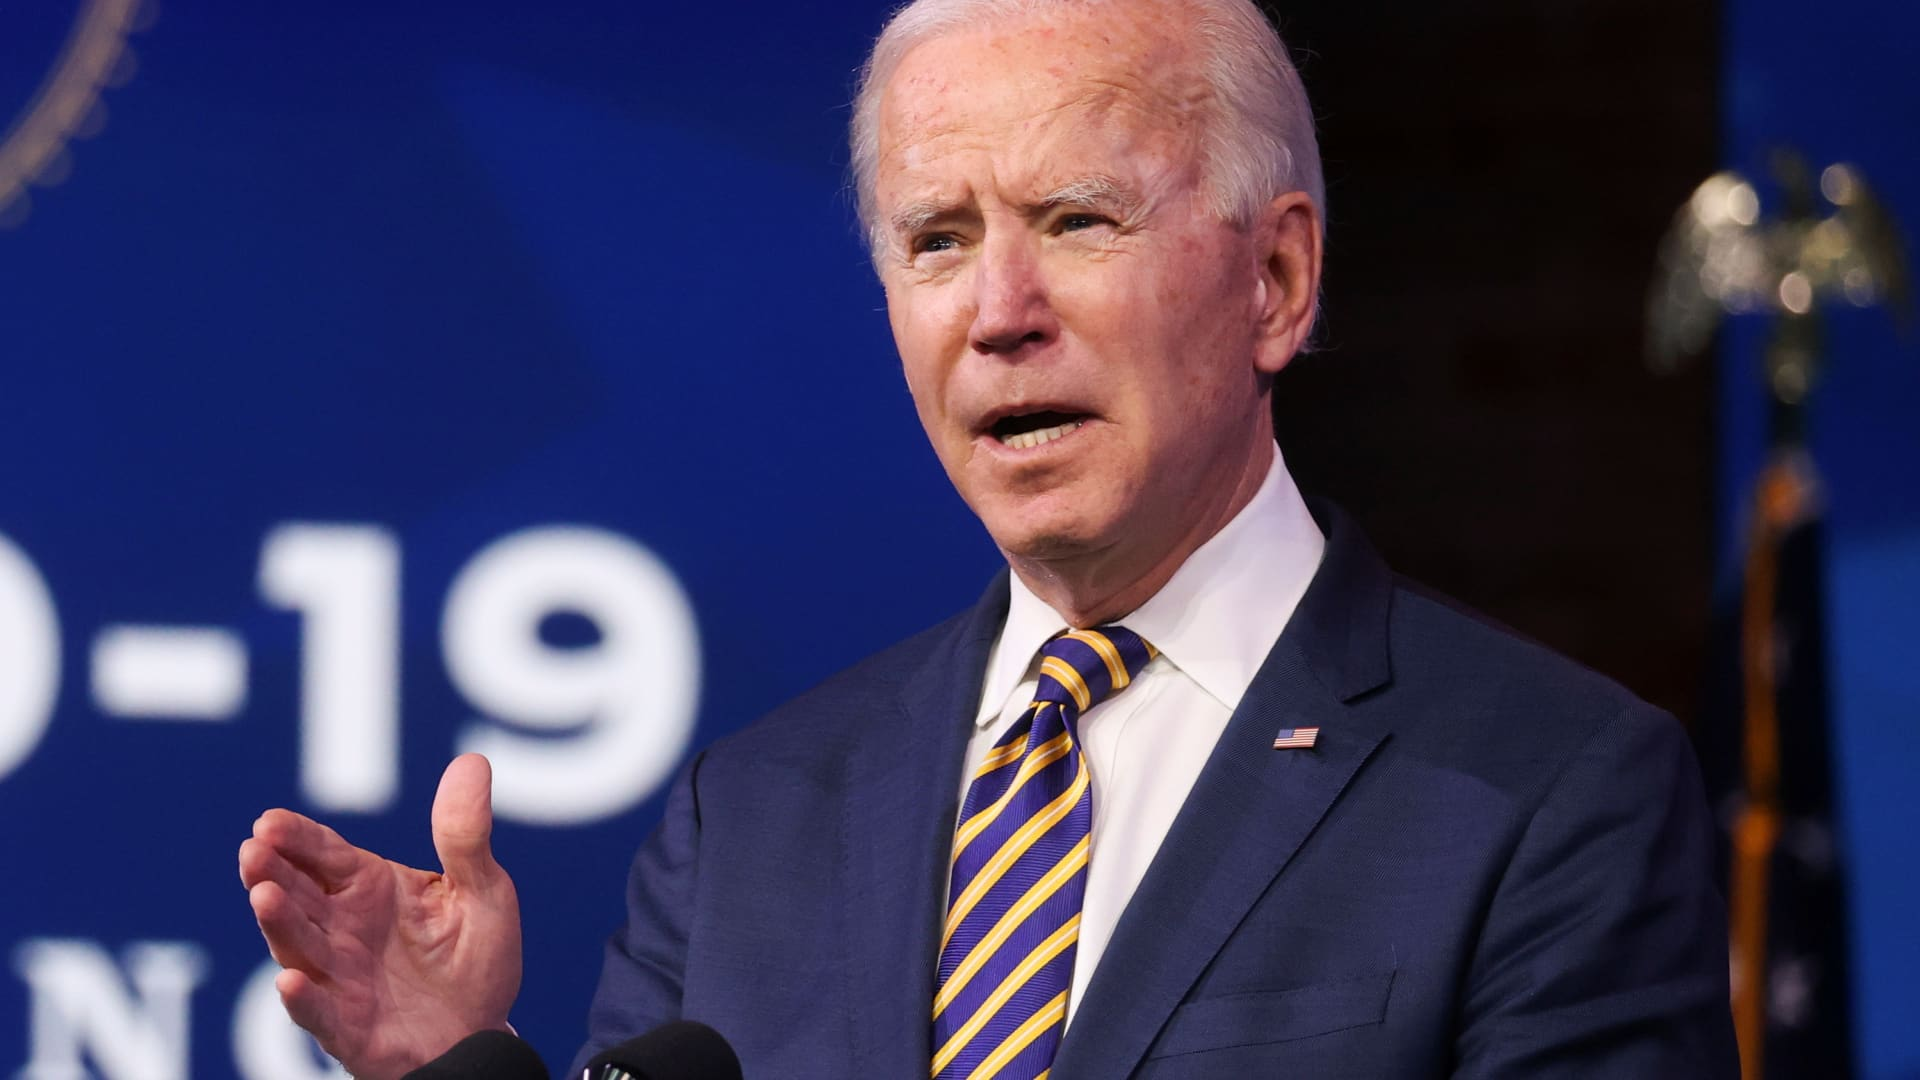 U.S. President-elect Joe Biden delivers remarks on the U.S. response to the coronavirus disease (COVID-19) outbreak, at his transition headquarters in Wilmington, Delaware, December 29, 2020.